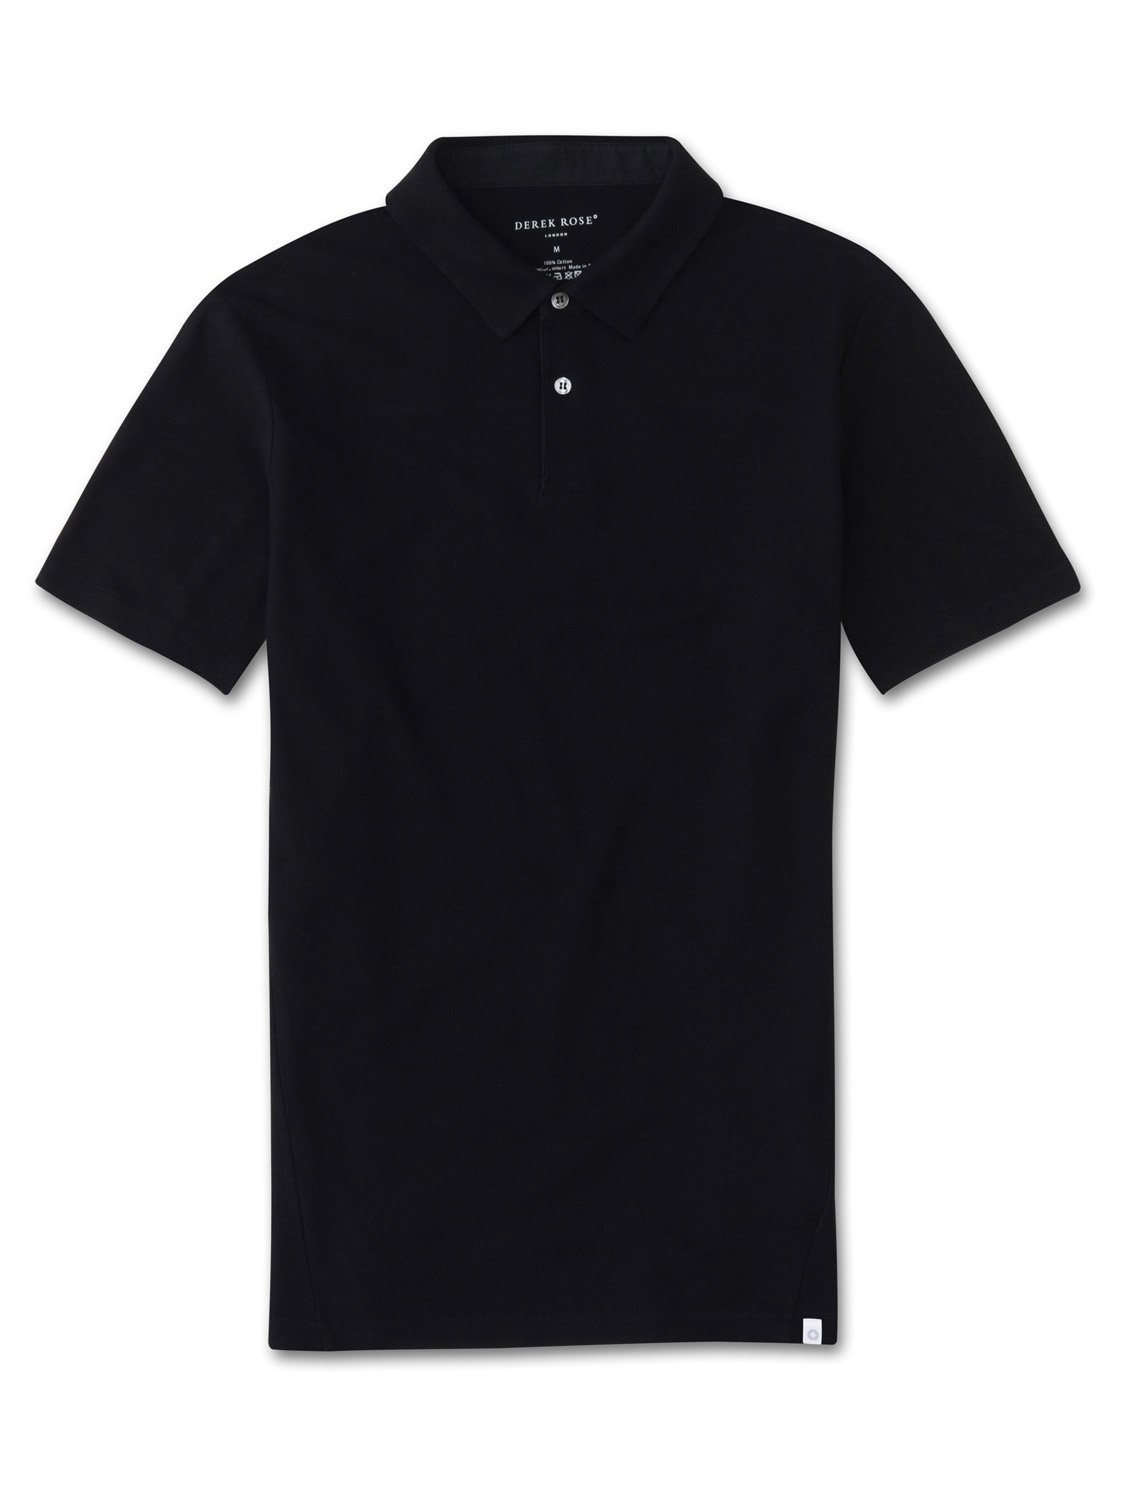 Men's Short Sleeve Polo Shirt Roland 2 Pique Cotton Black